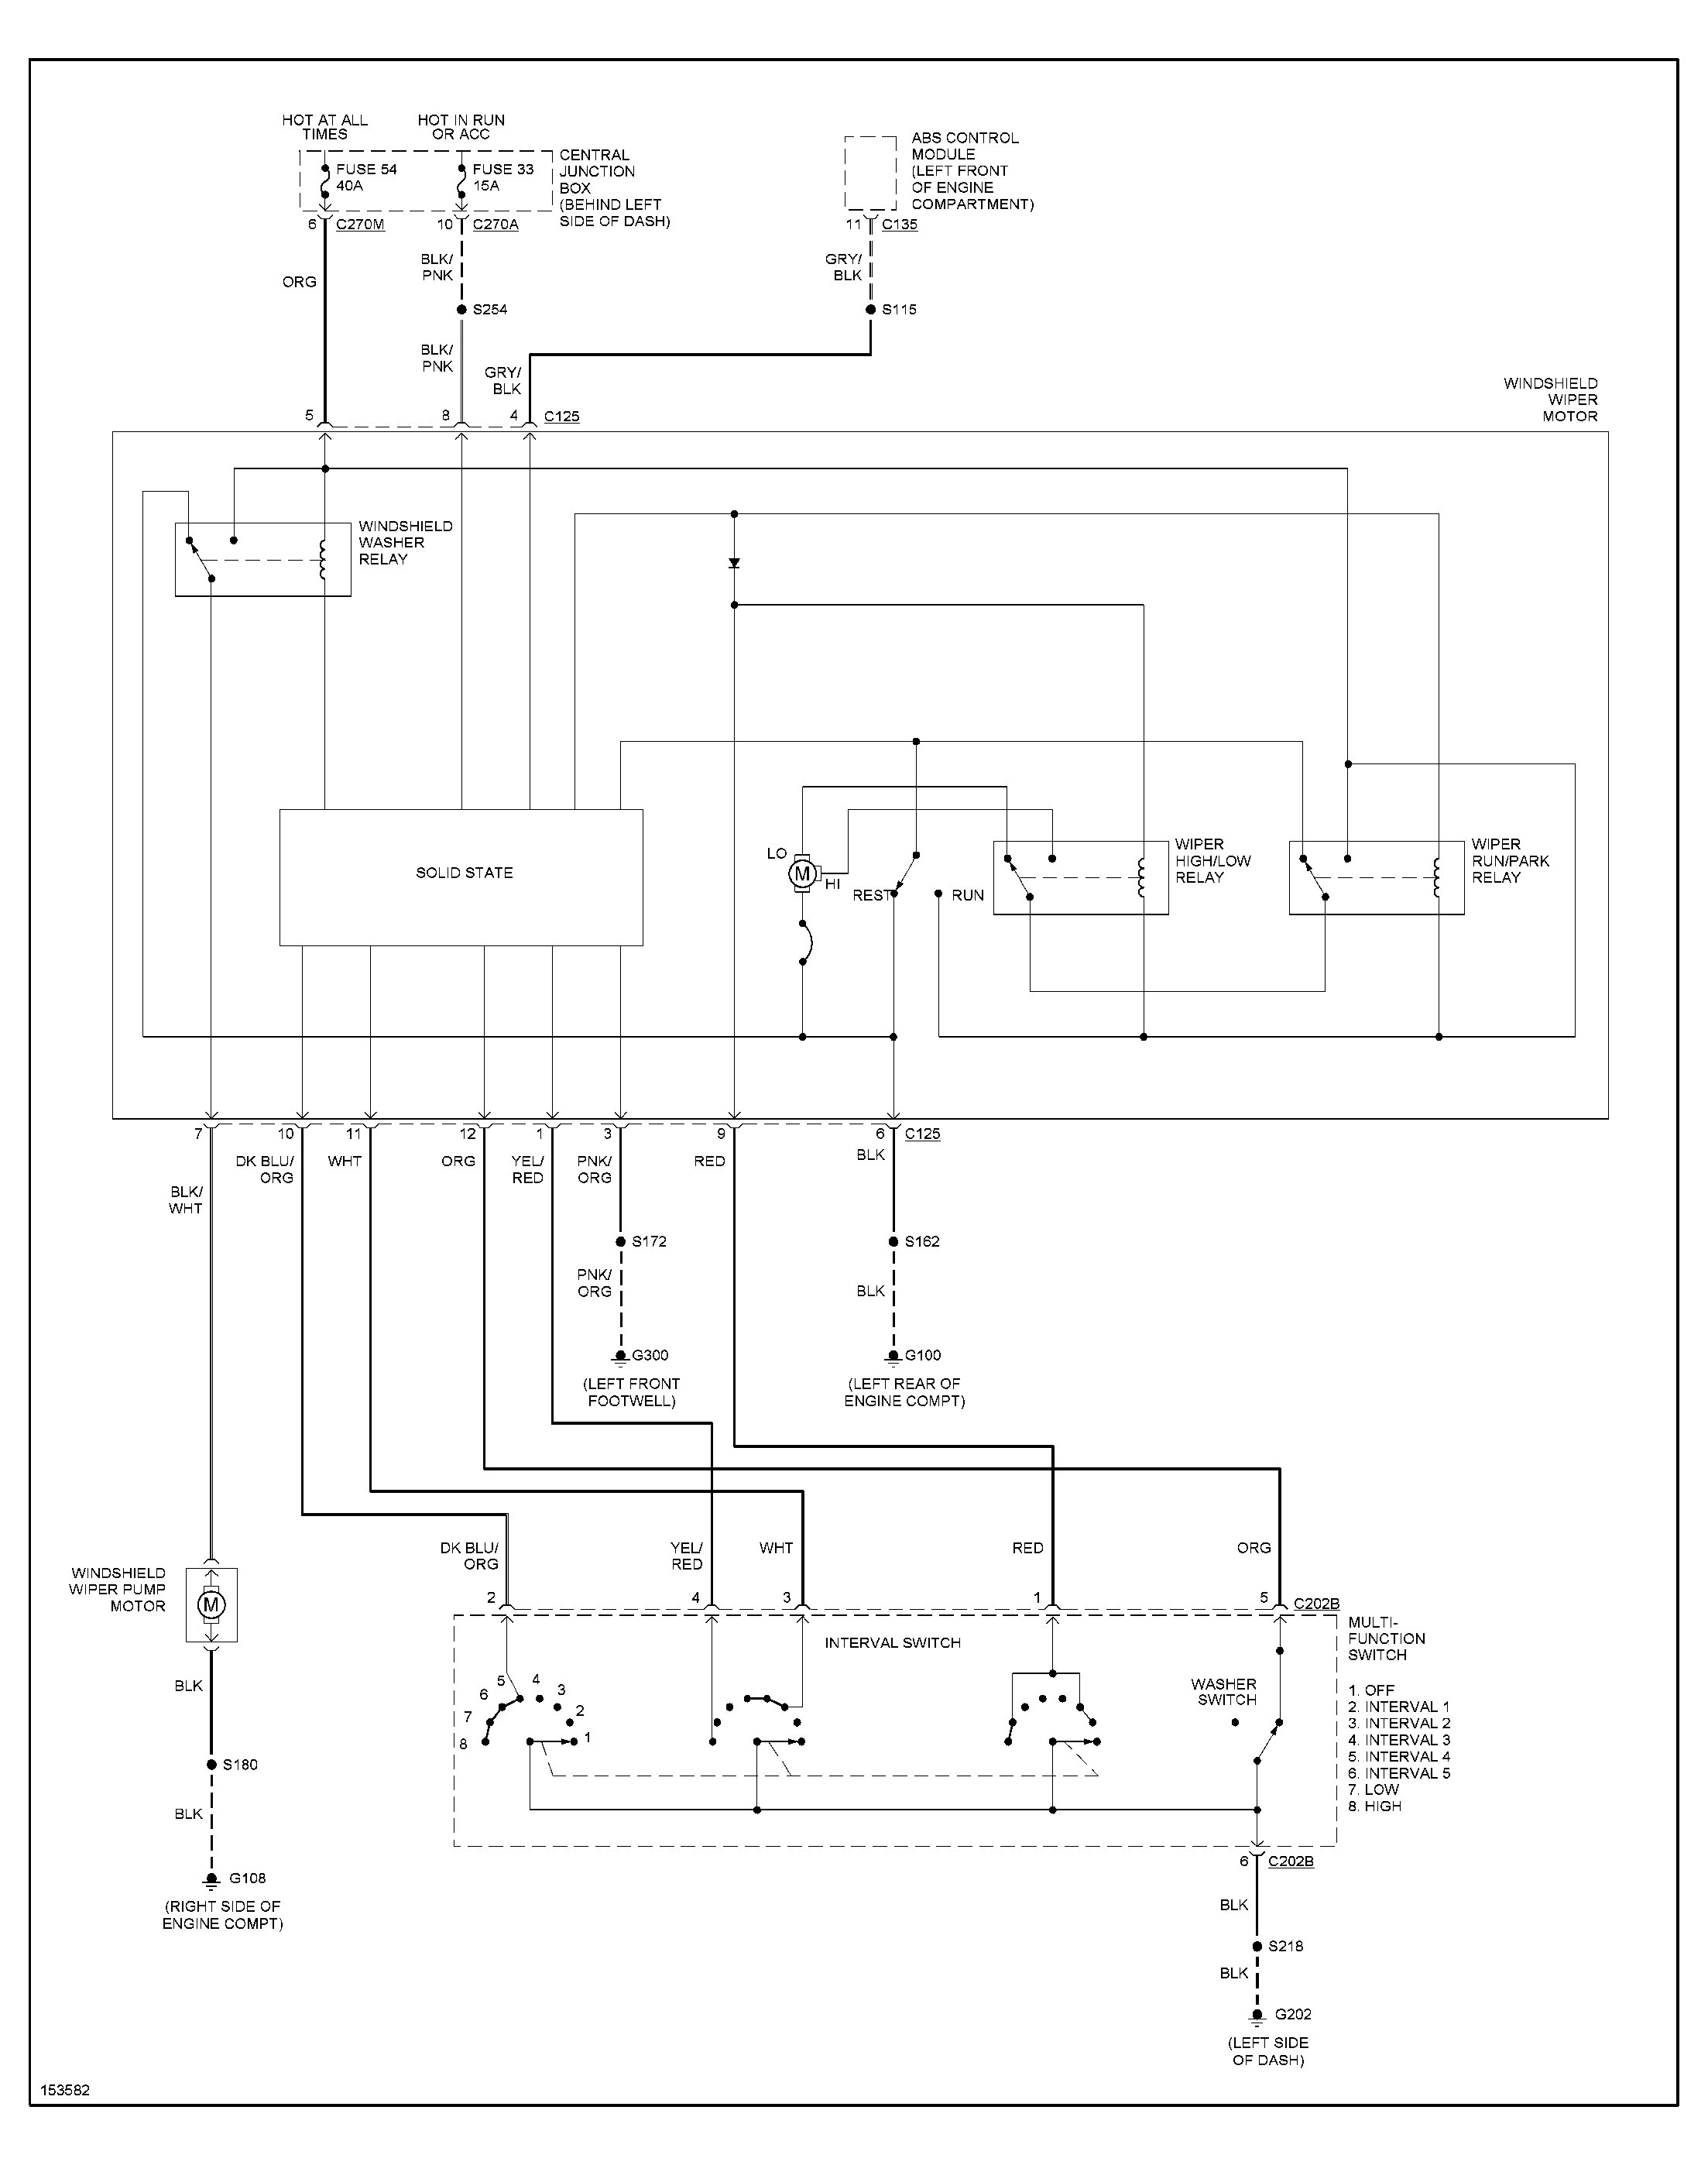 2002 Ford Focus 2 0 Engine Diagram Expert Category Circuit Diagram \u2022  2003 Ford Explorer Cylinder Diagram 2002 Ford Focus Engine Diagram